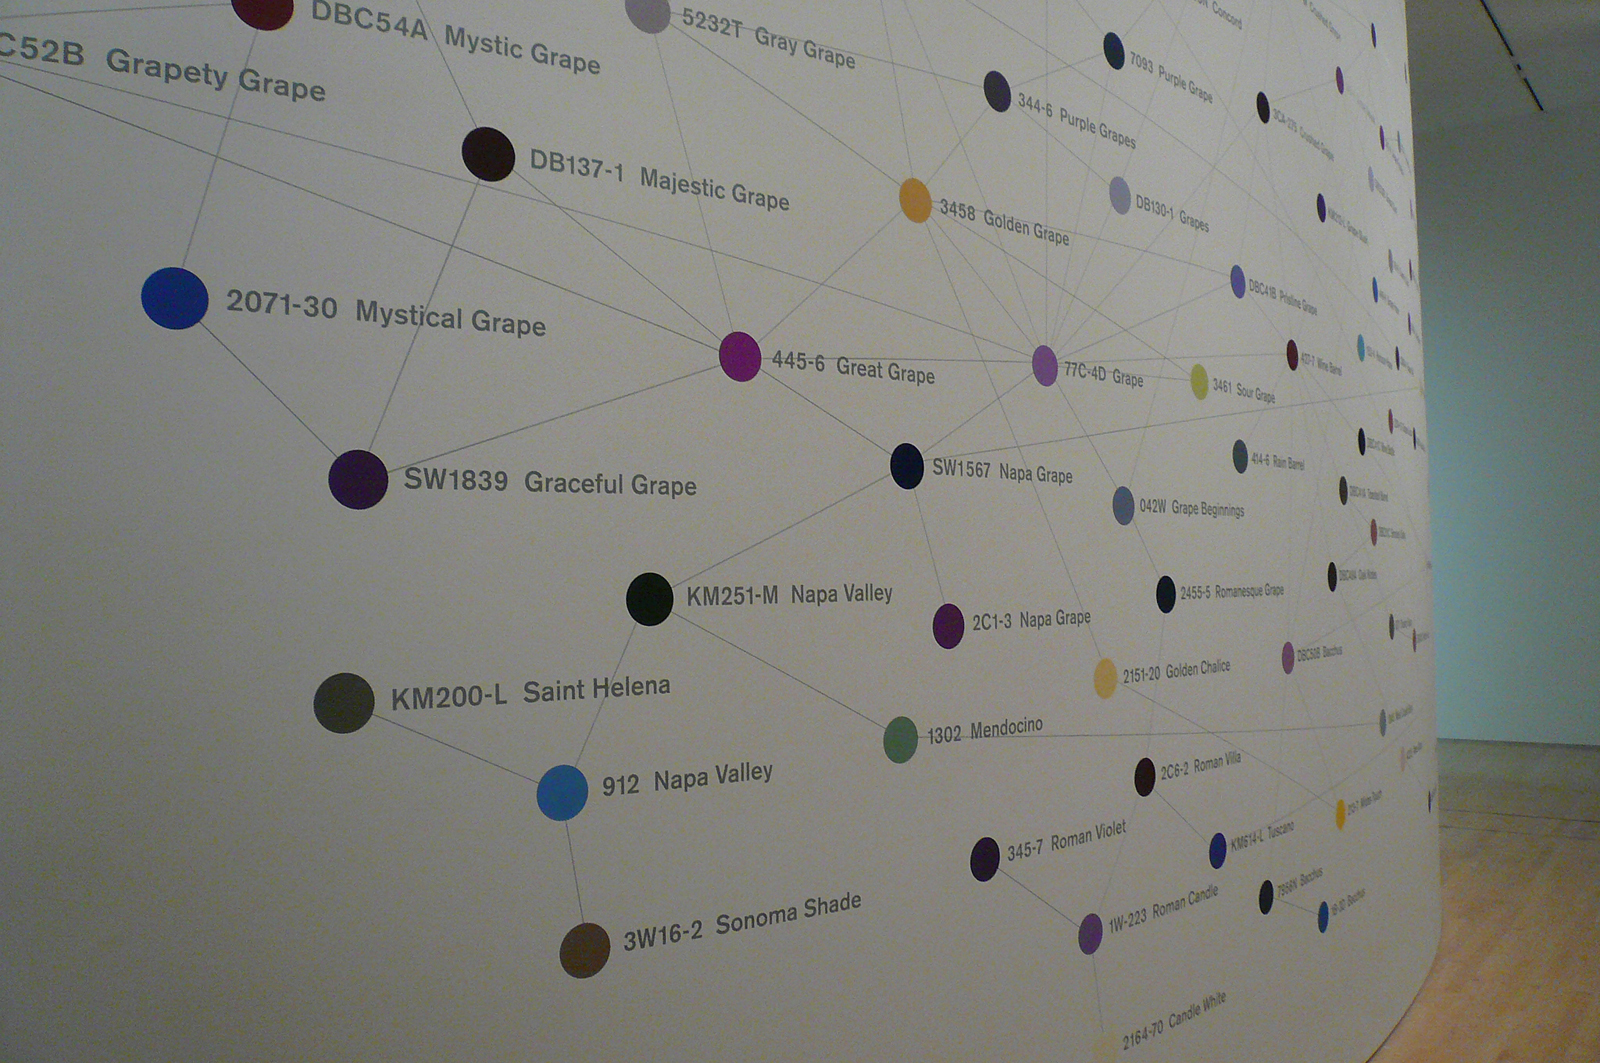 At the entrance to the exhibition is Peter Wegner's mural 'Veritas,' which charts over 200 paint colors named after wine and grapes, from Bacchus to Grapety Grape.